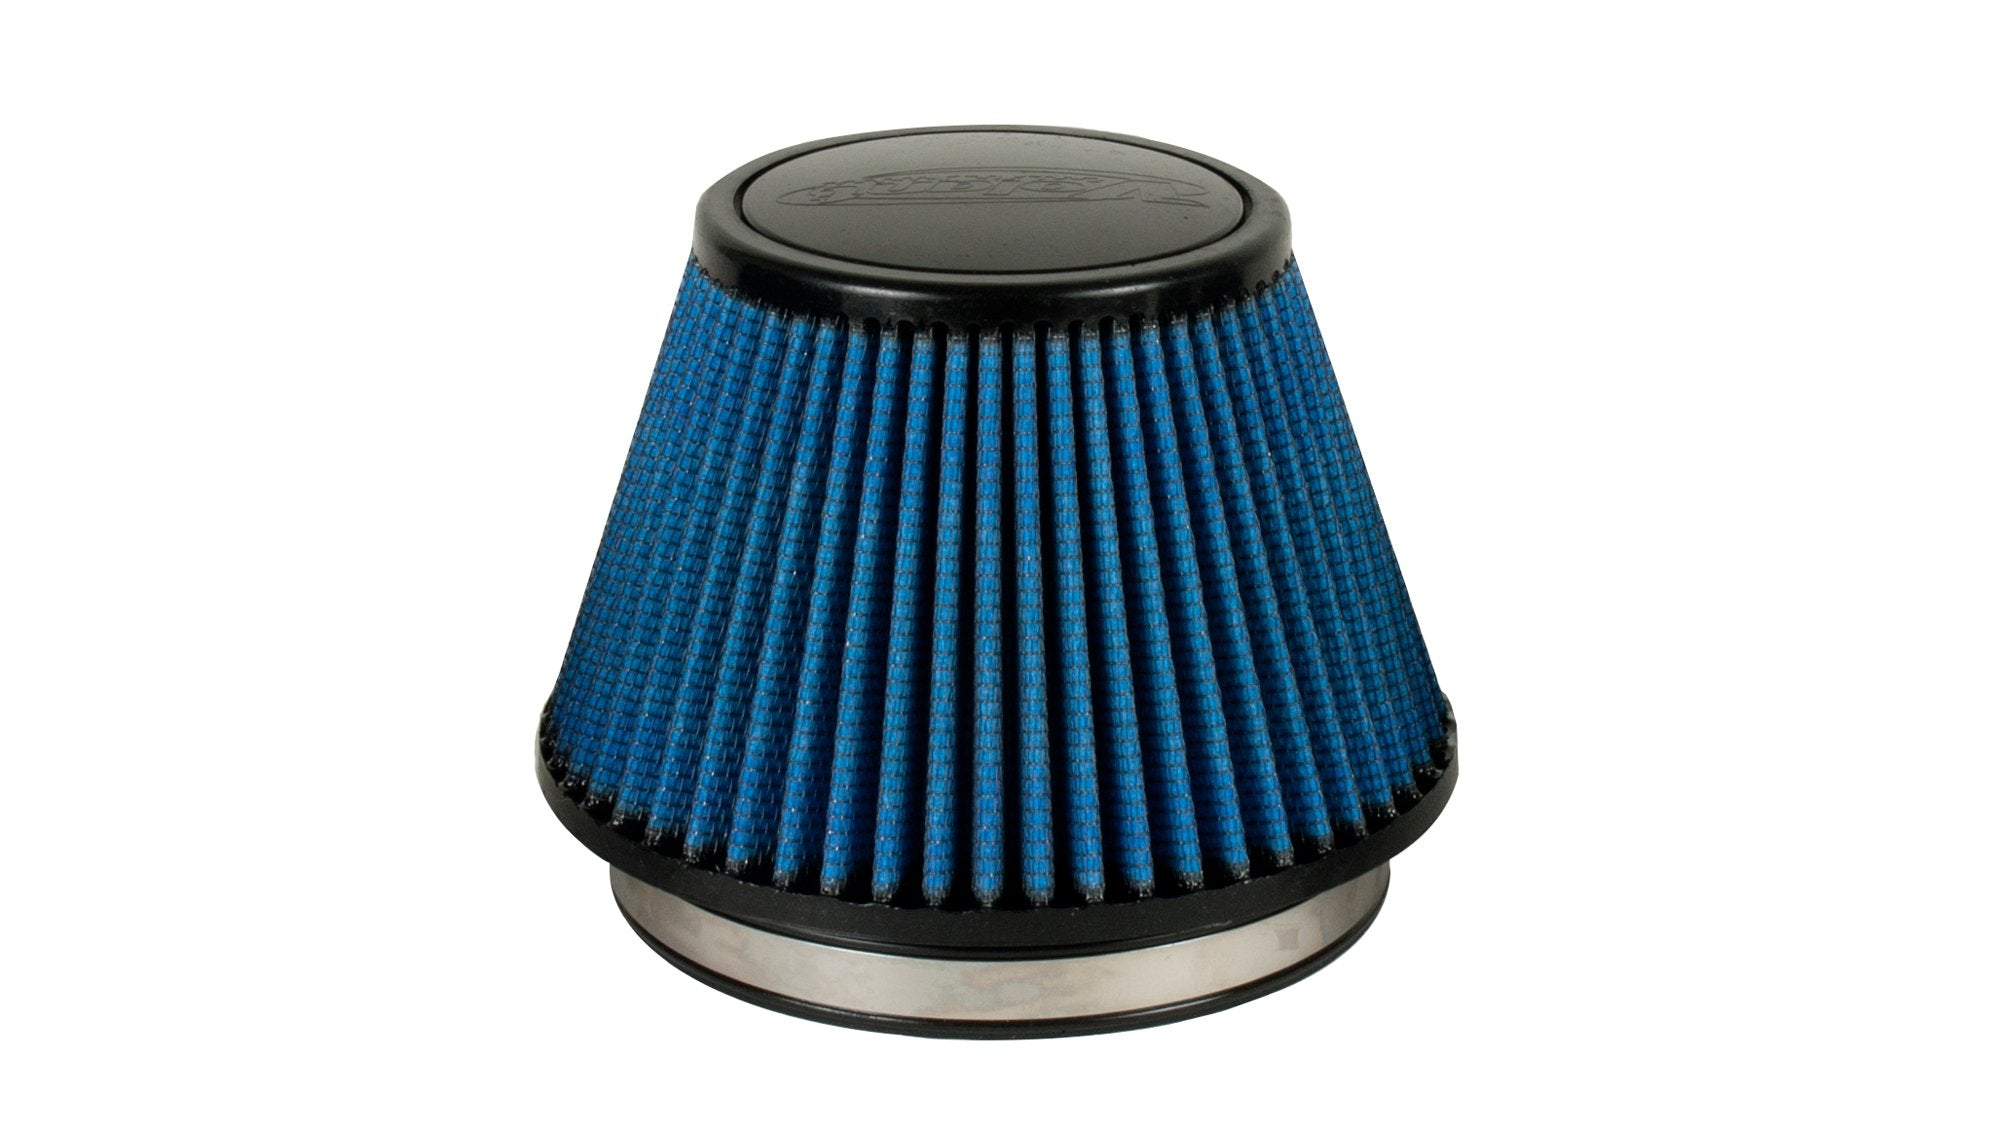 MaxFlow Oiled Air Filter (5120) Replacement Air Filter